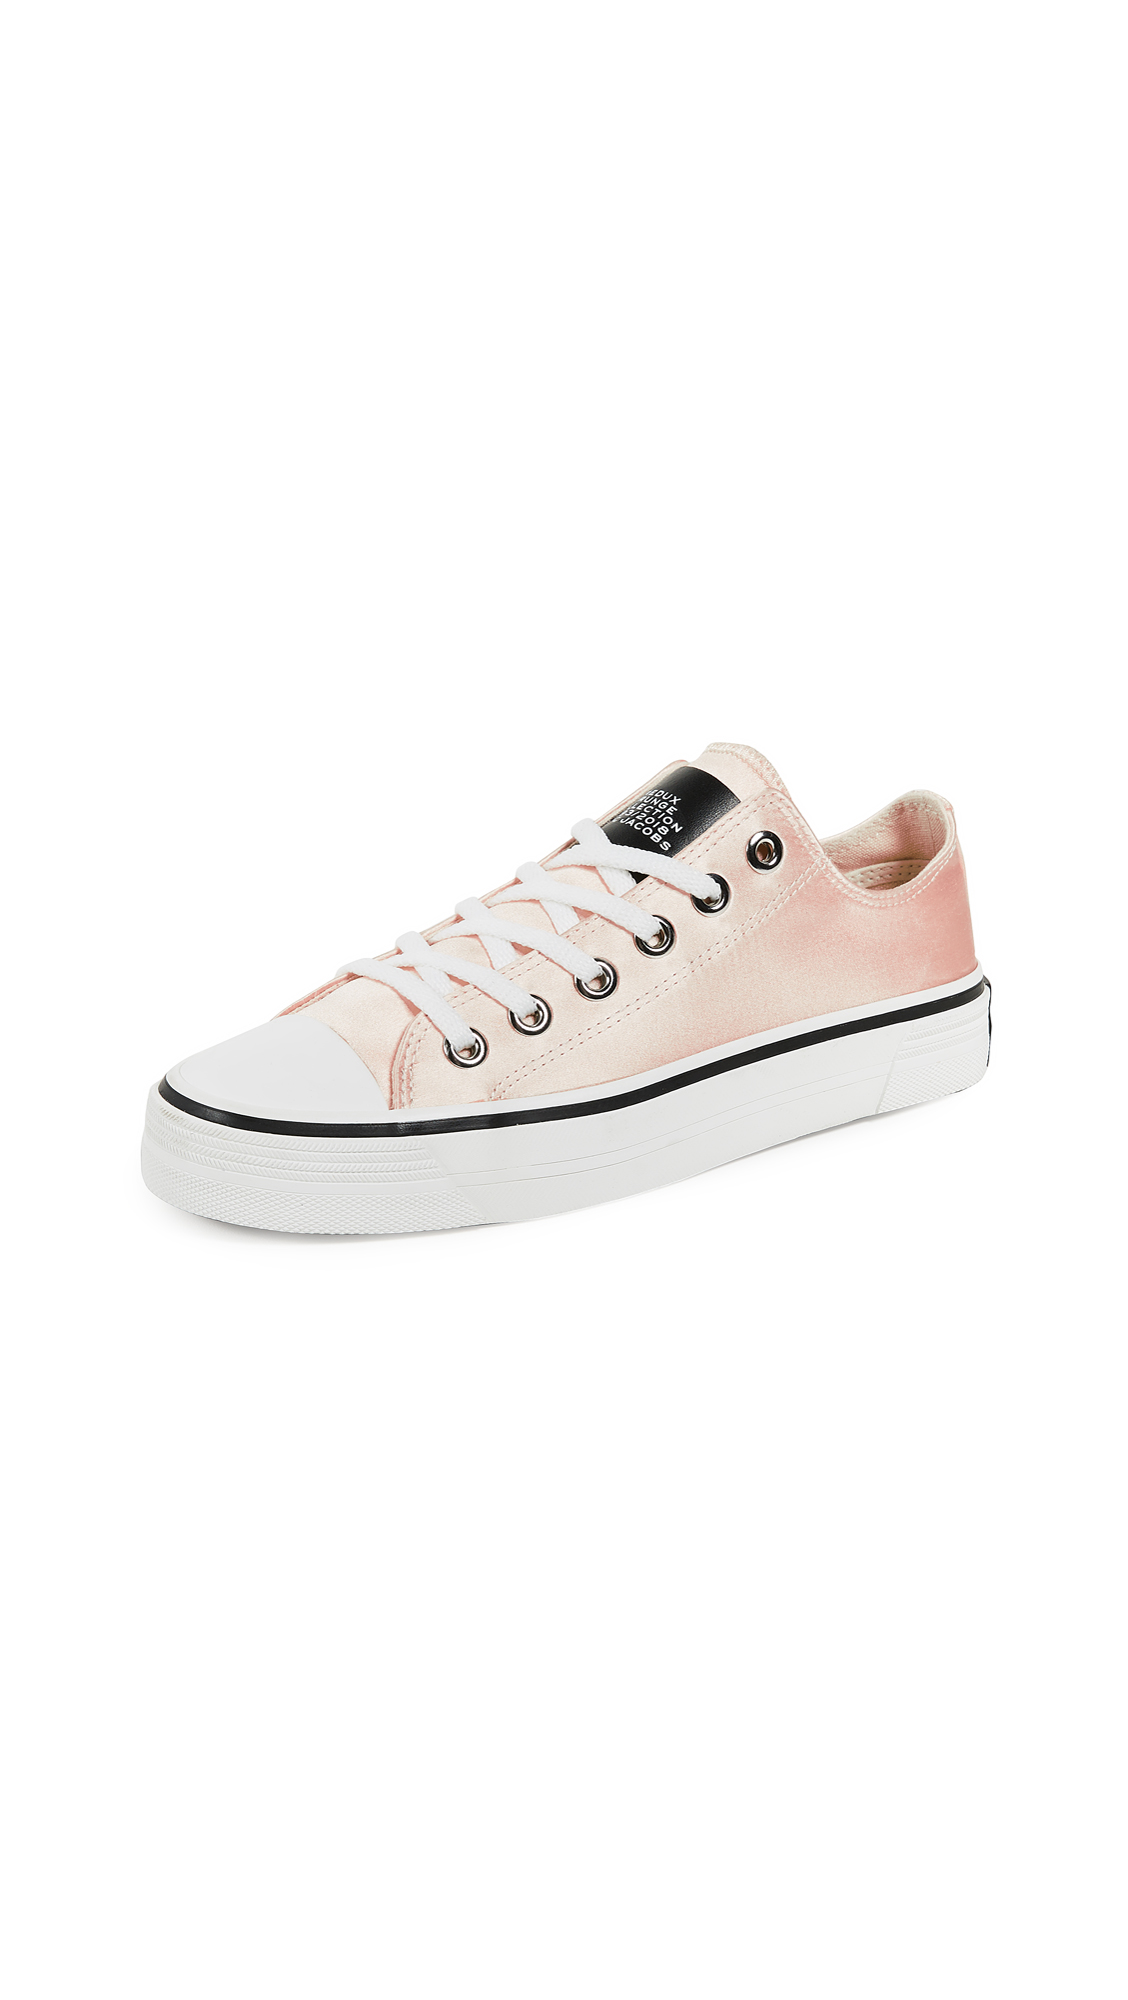 Marc Jacobs Grunge Low Top Sneakers - Peach